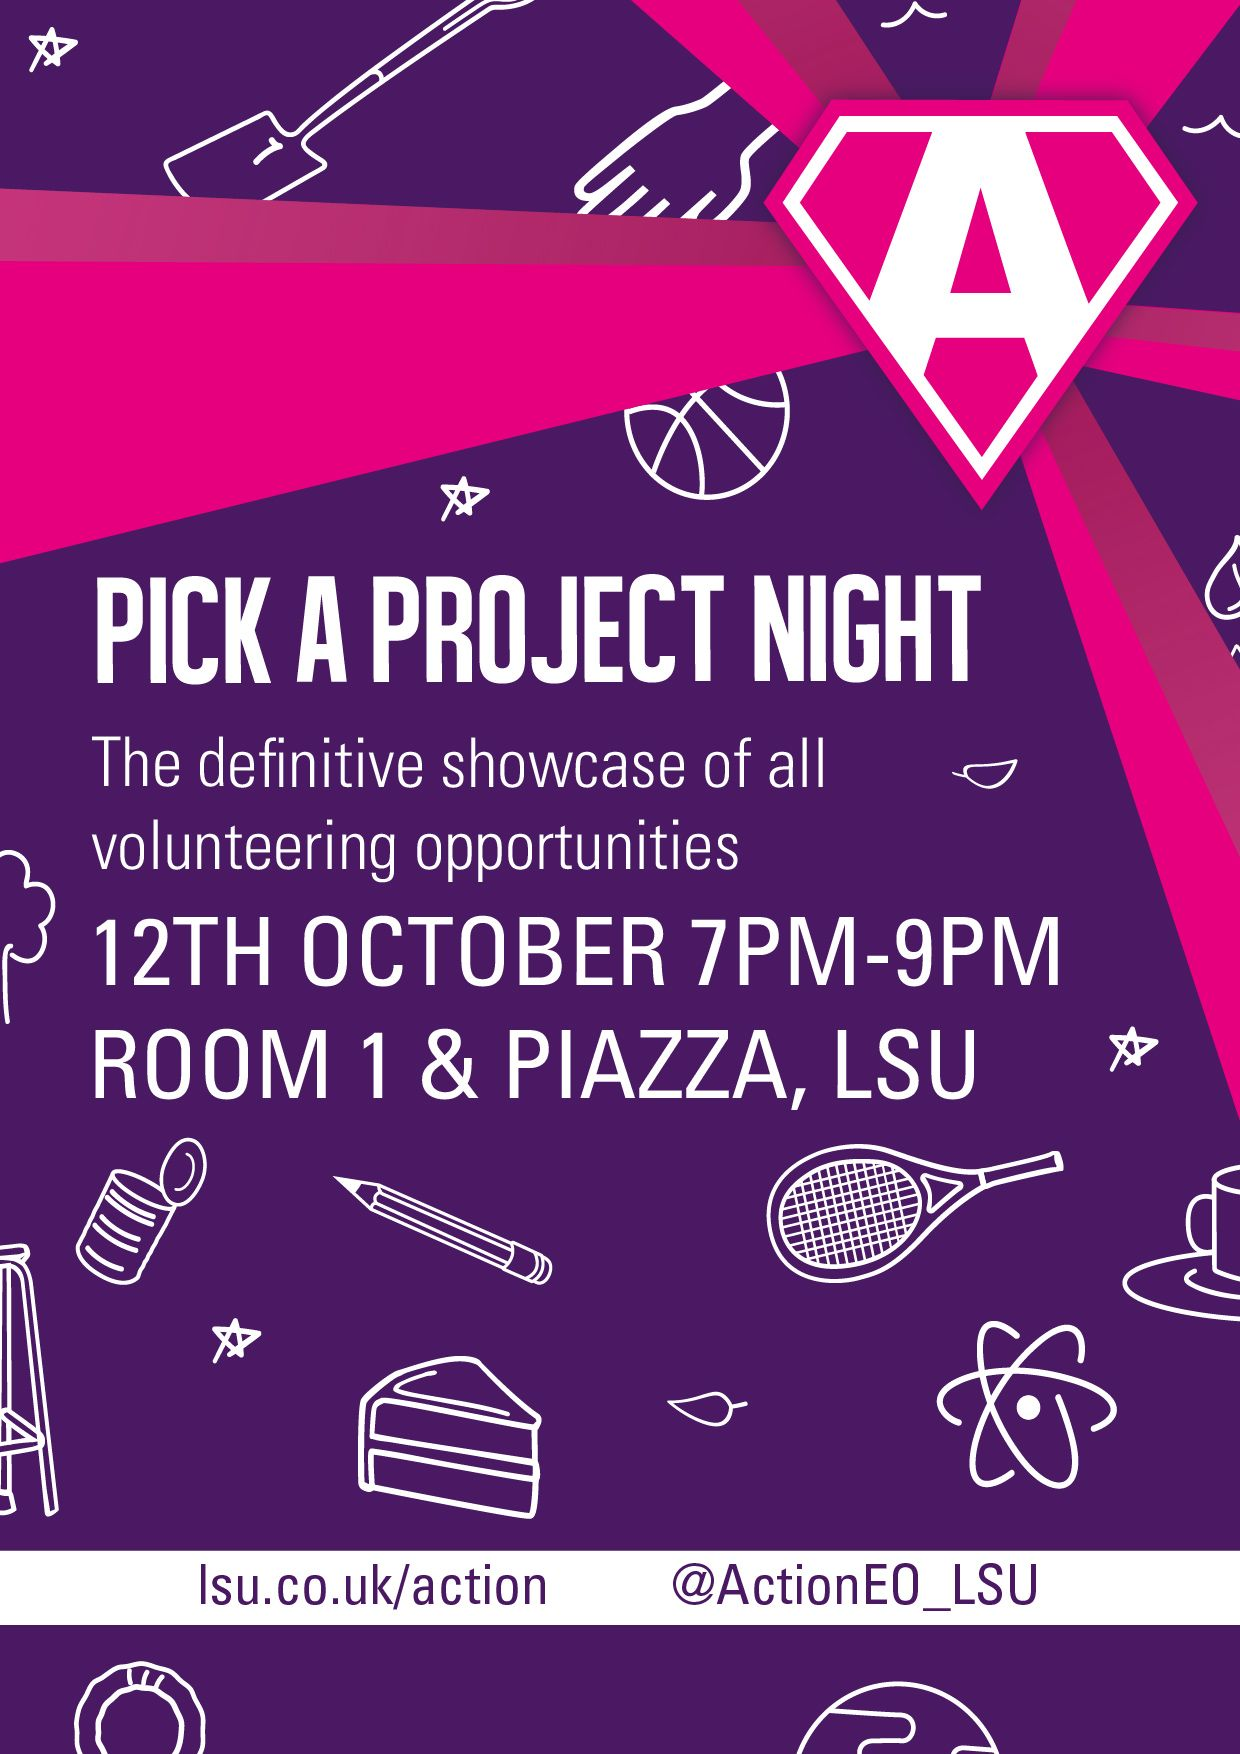 poster advertising Pick a Project evening